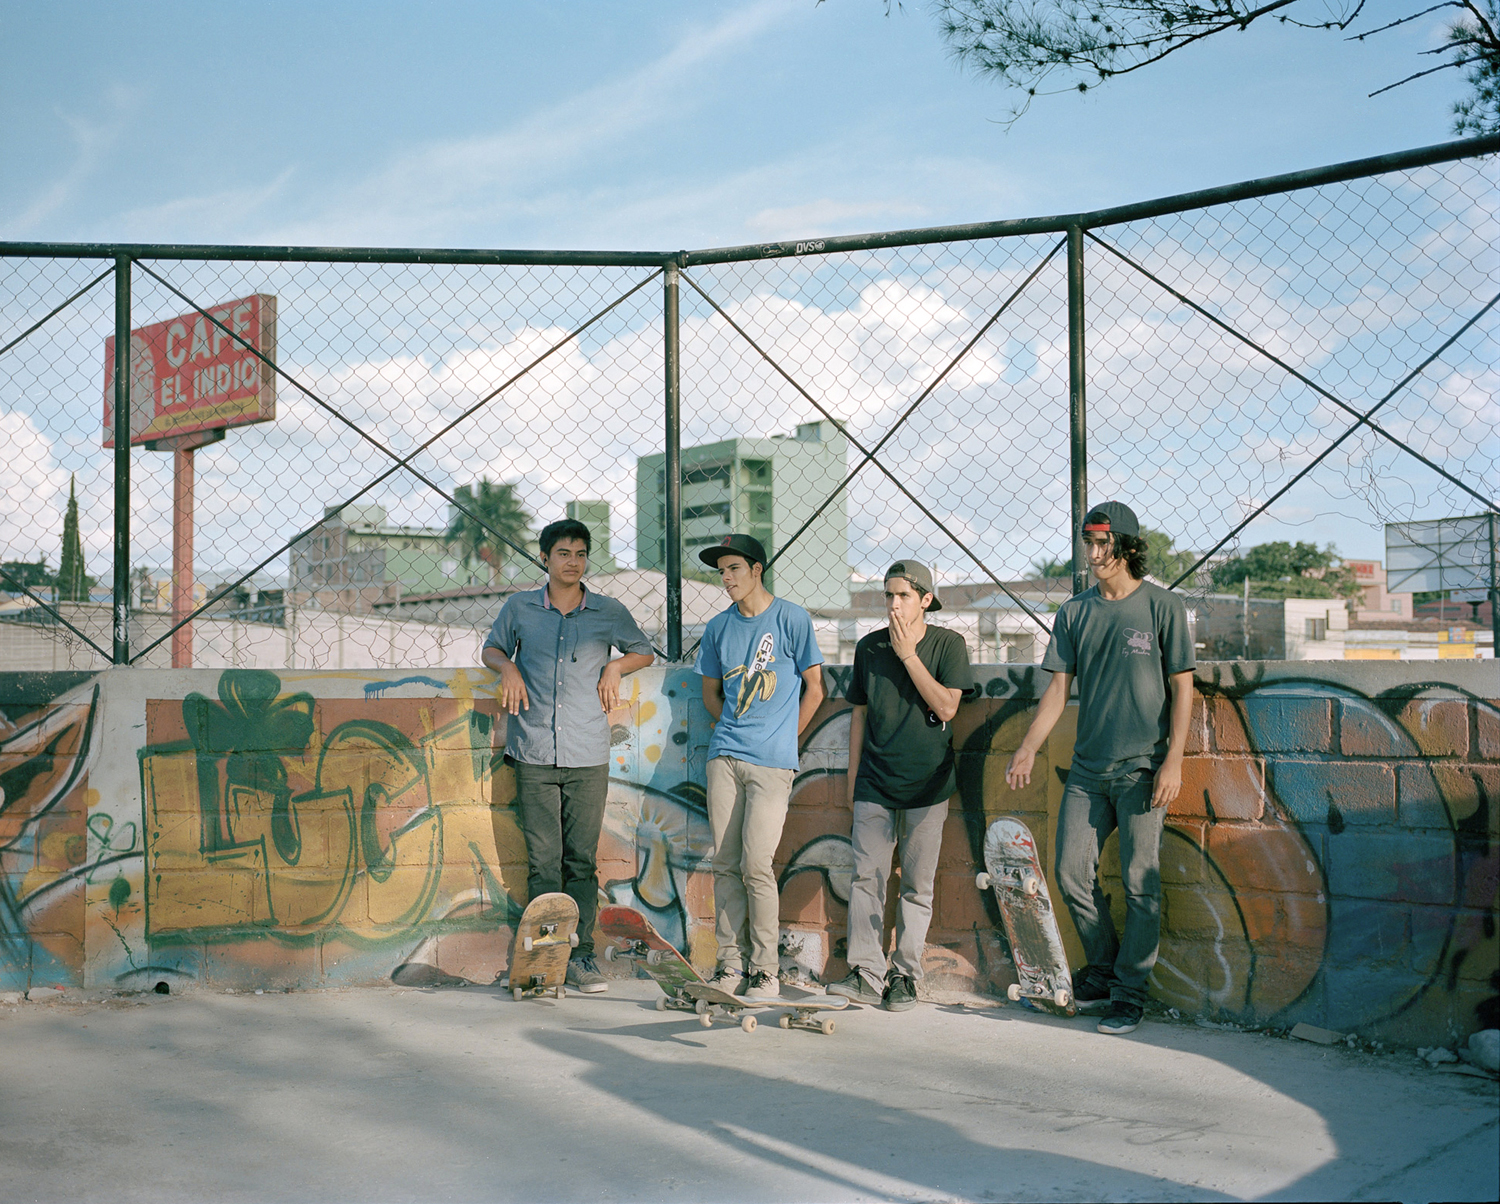 Boys hang out in the El Ove park in Tegucigalpa.